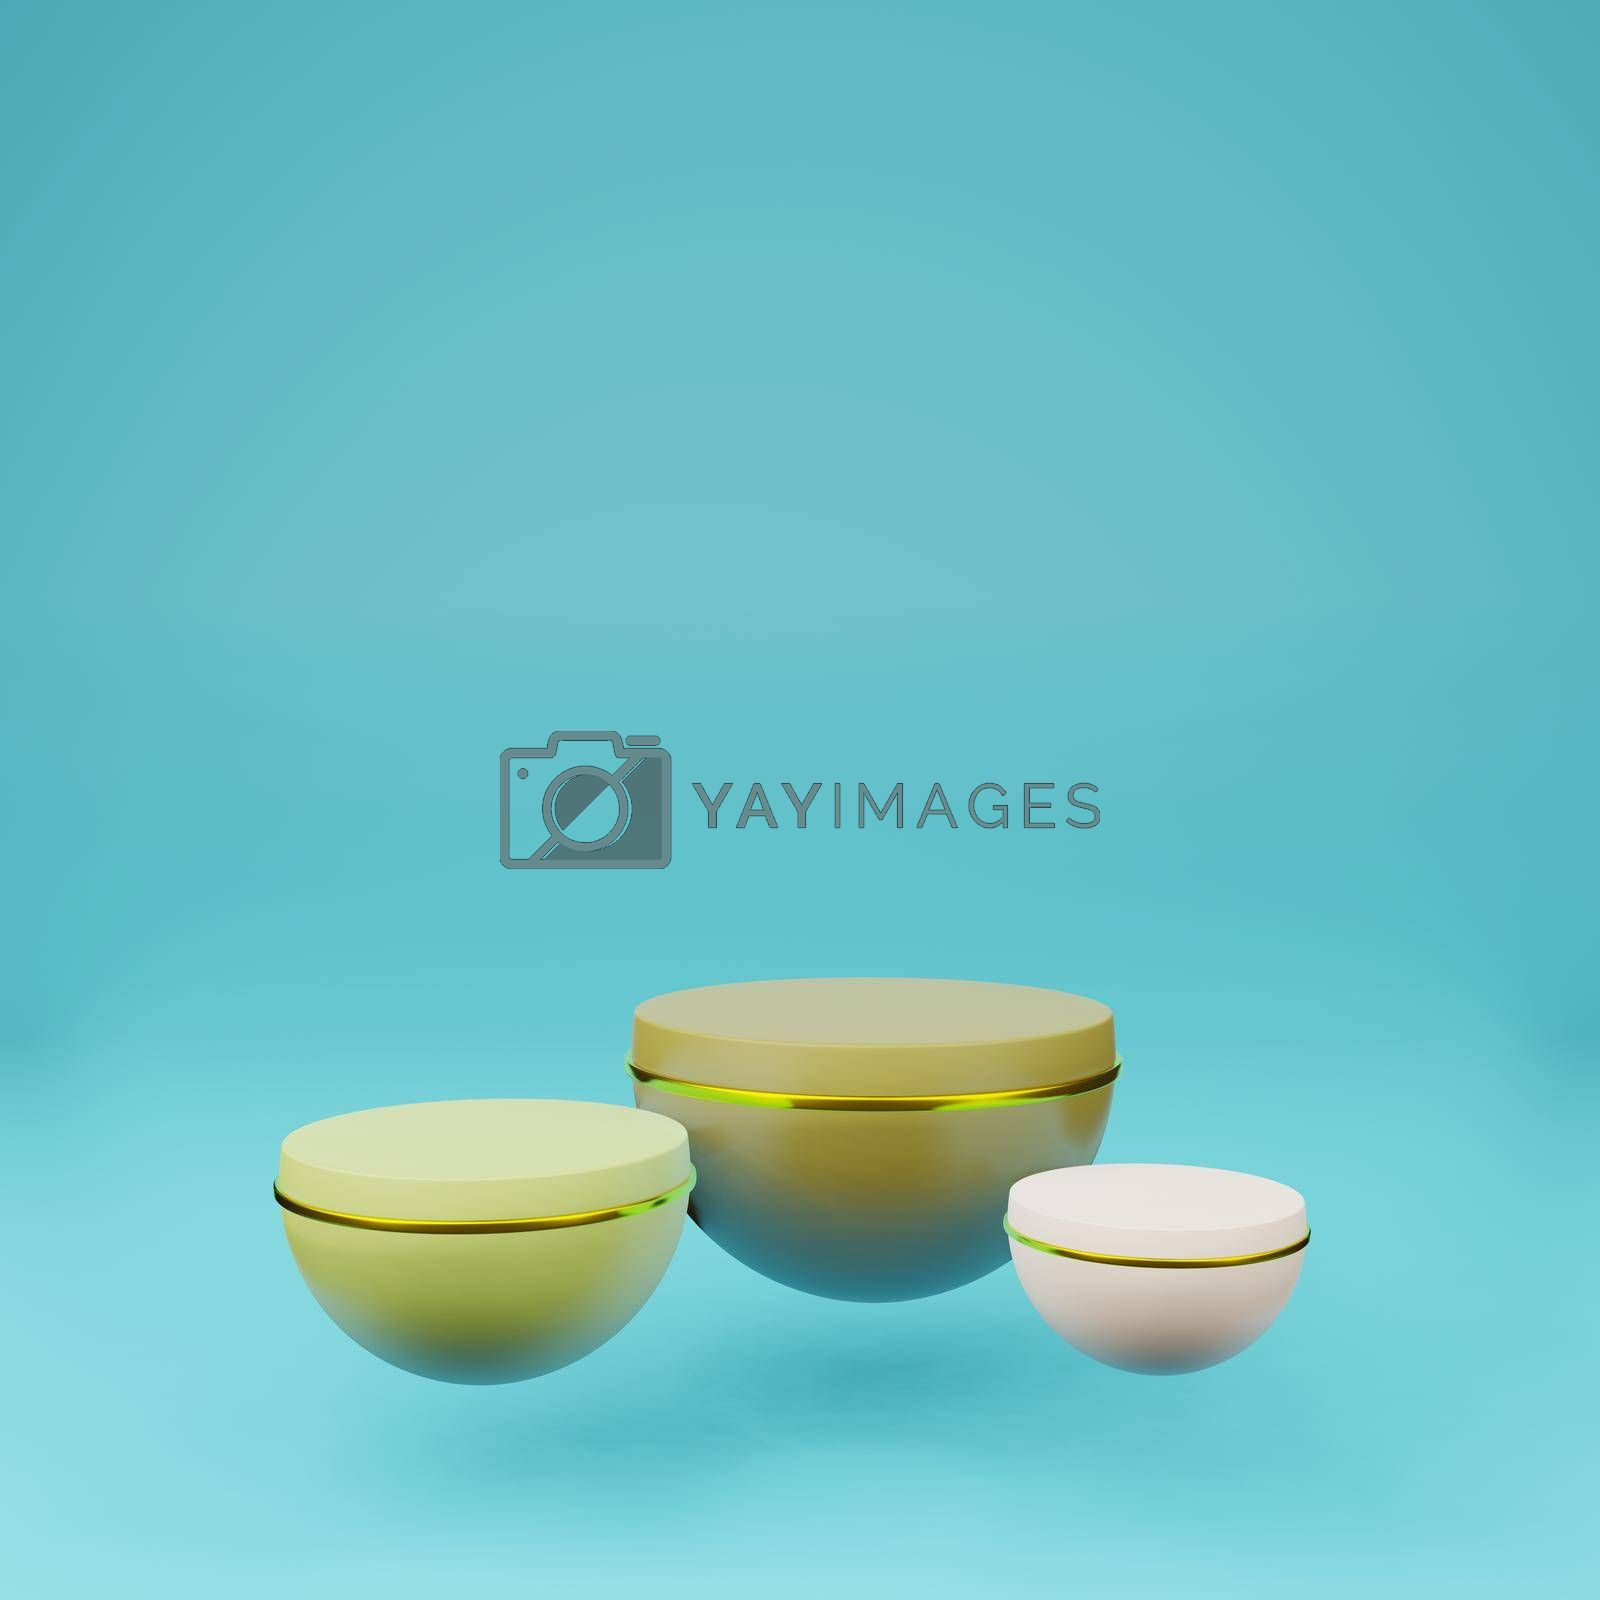 Royalty free image of Green planet podium with summer tone on blue background by eaglesky